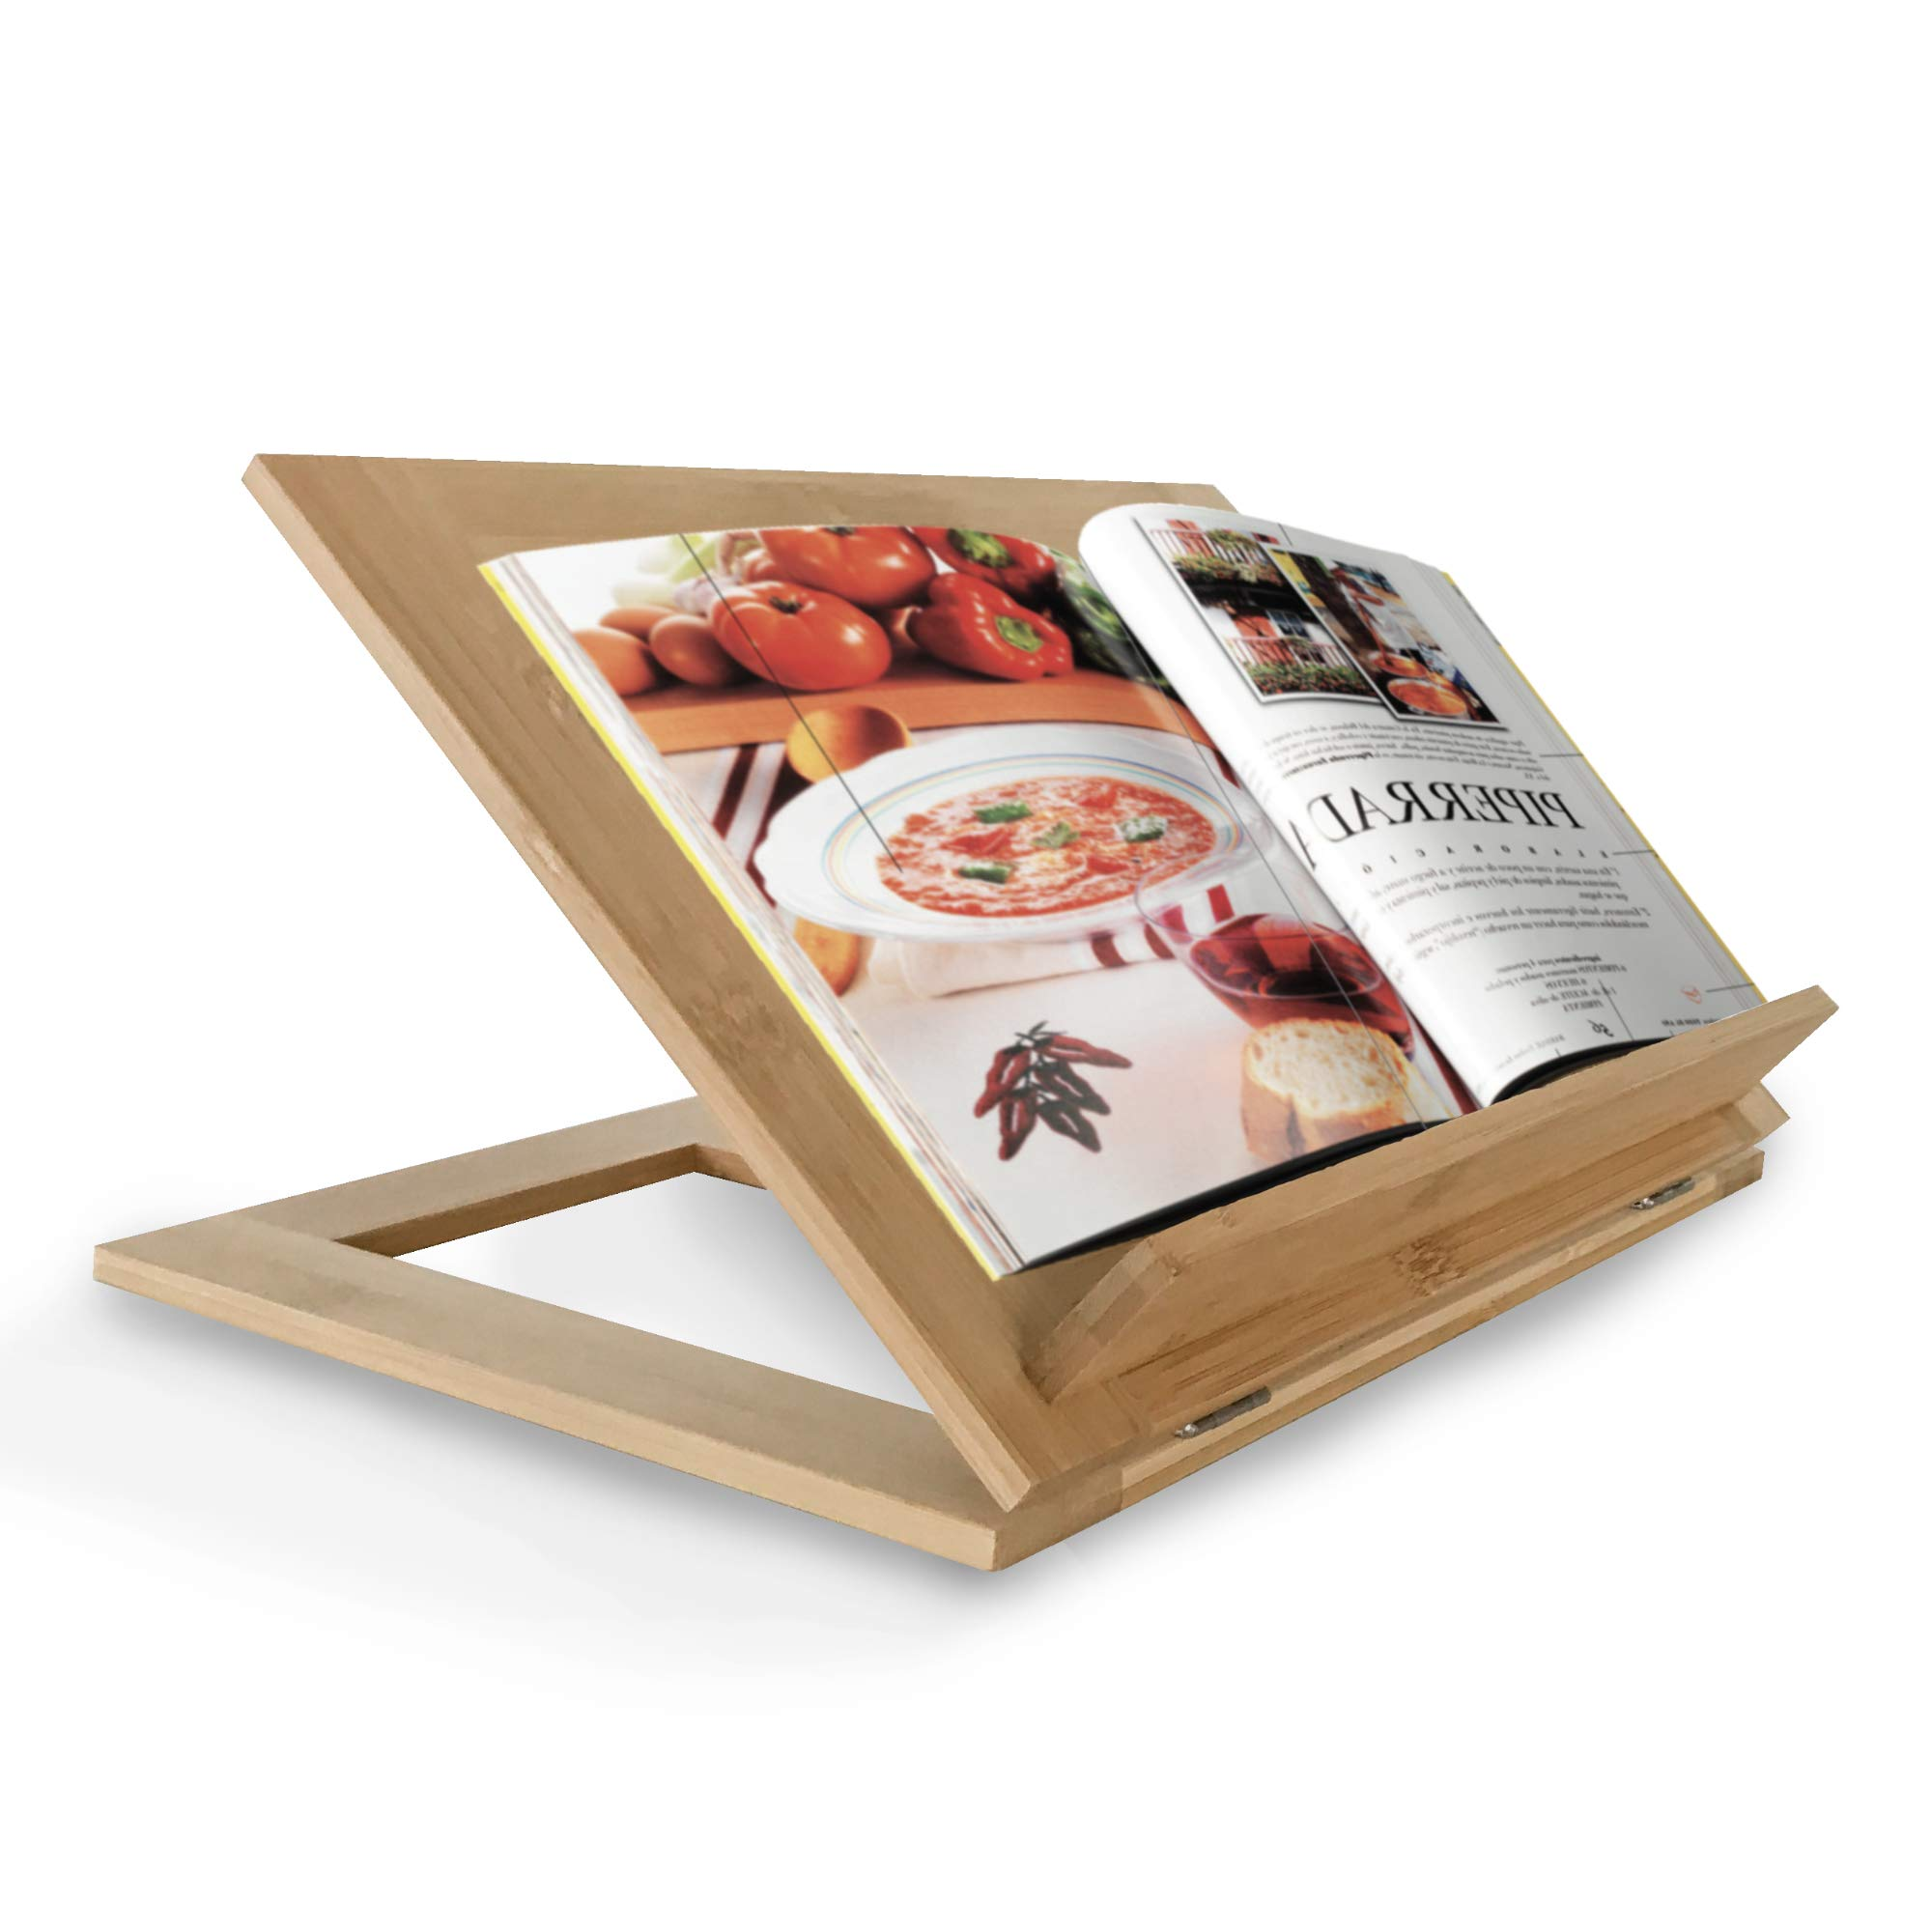 Natural Bamboo Book Stand | Wooden Holders for Big or Small Books | Wood Stands for Recipe Books Perfect for Kitchen Decor | Portable and Foldable Features by Home & Decor BK